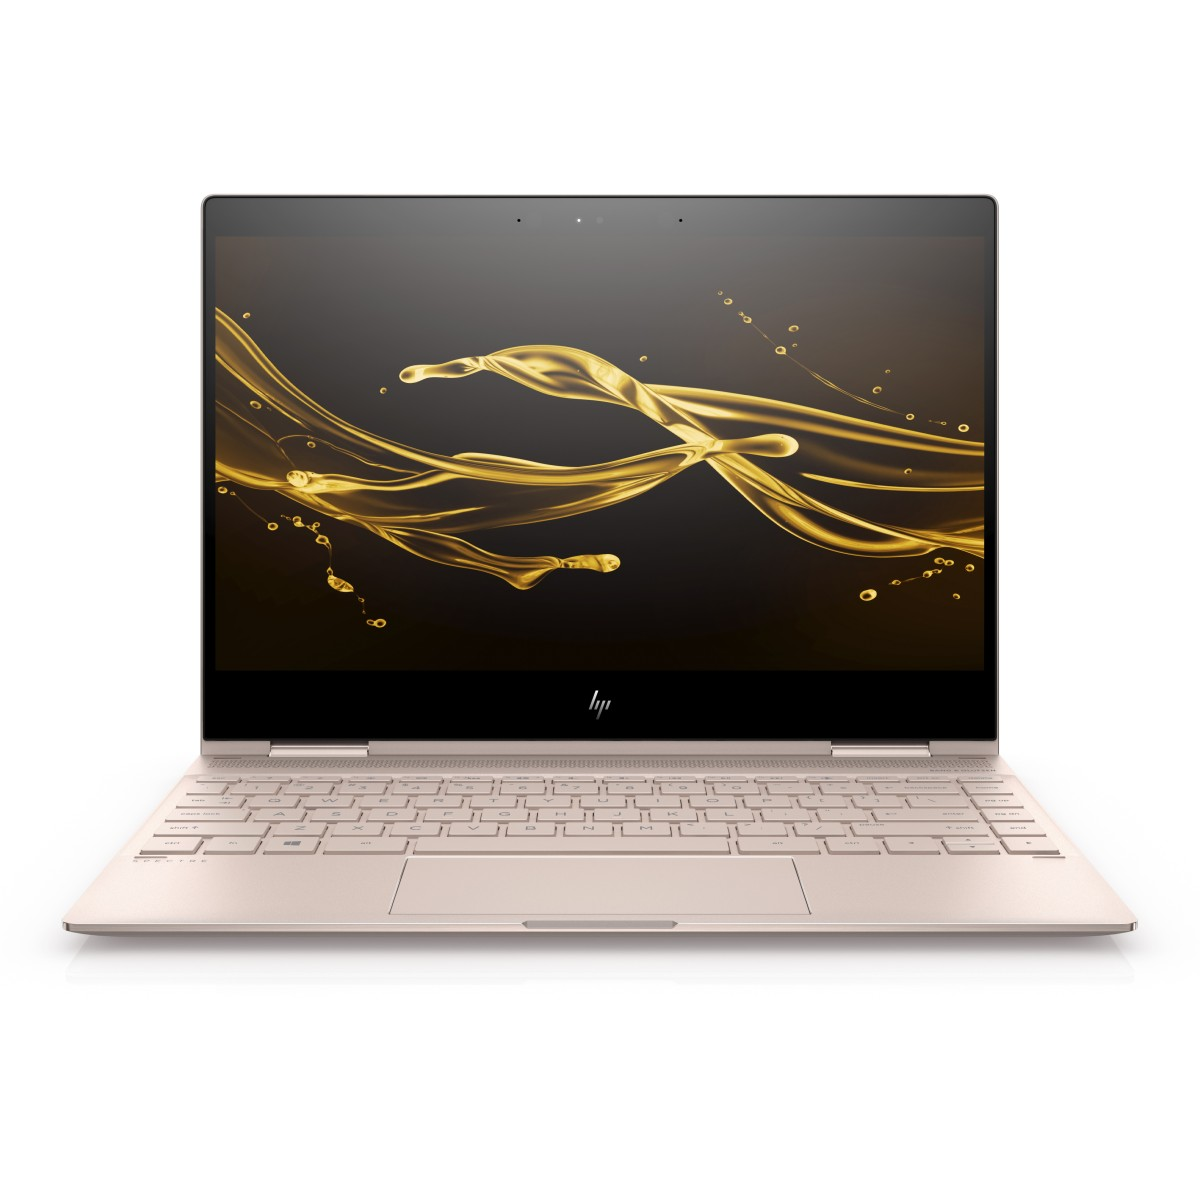 2ZG64EA#BCM HP Spectre 13 x360-ae009nc FHD i5-8250U/8GB/256SSD/2RServis/W10-rose gold